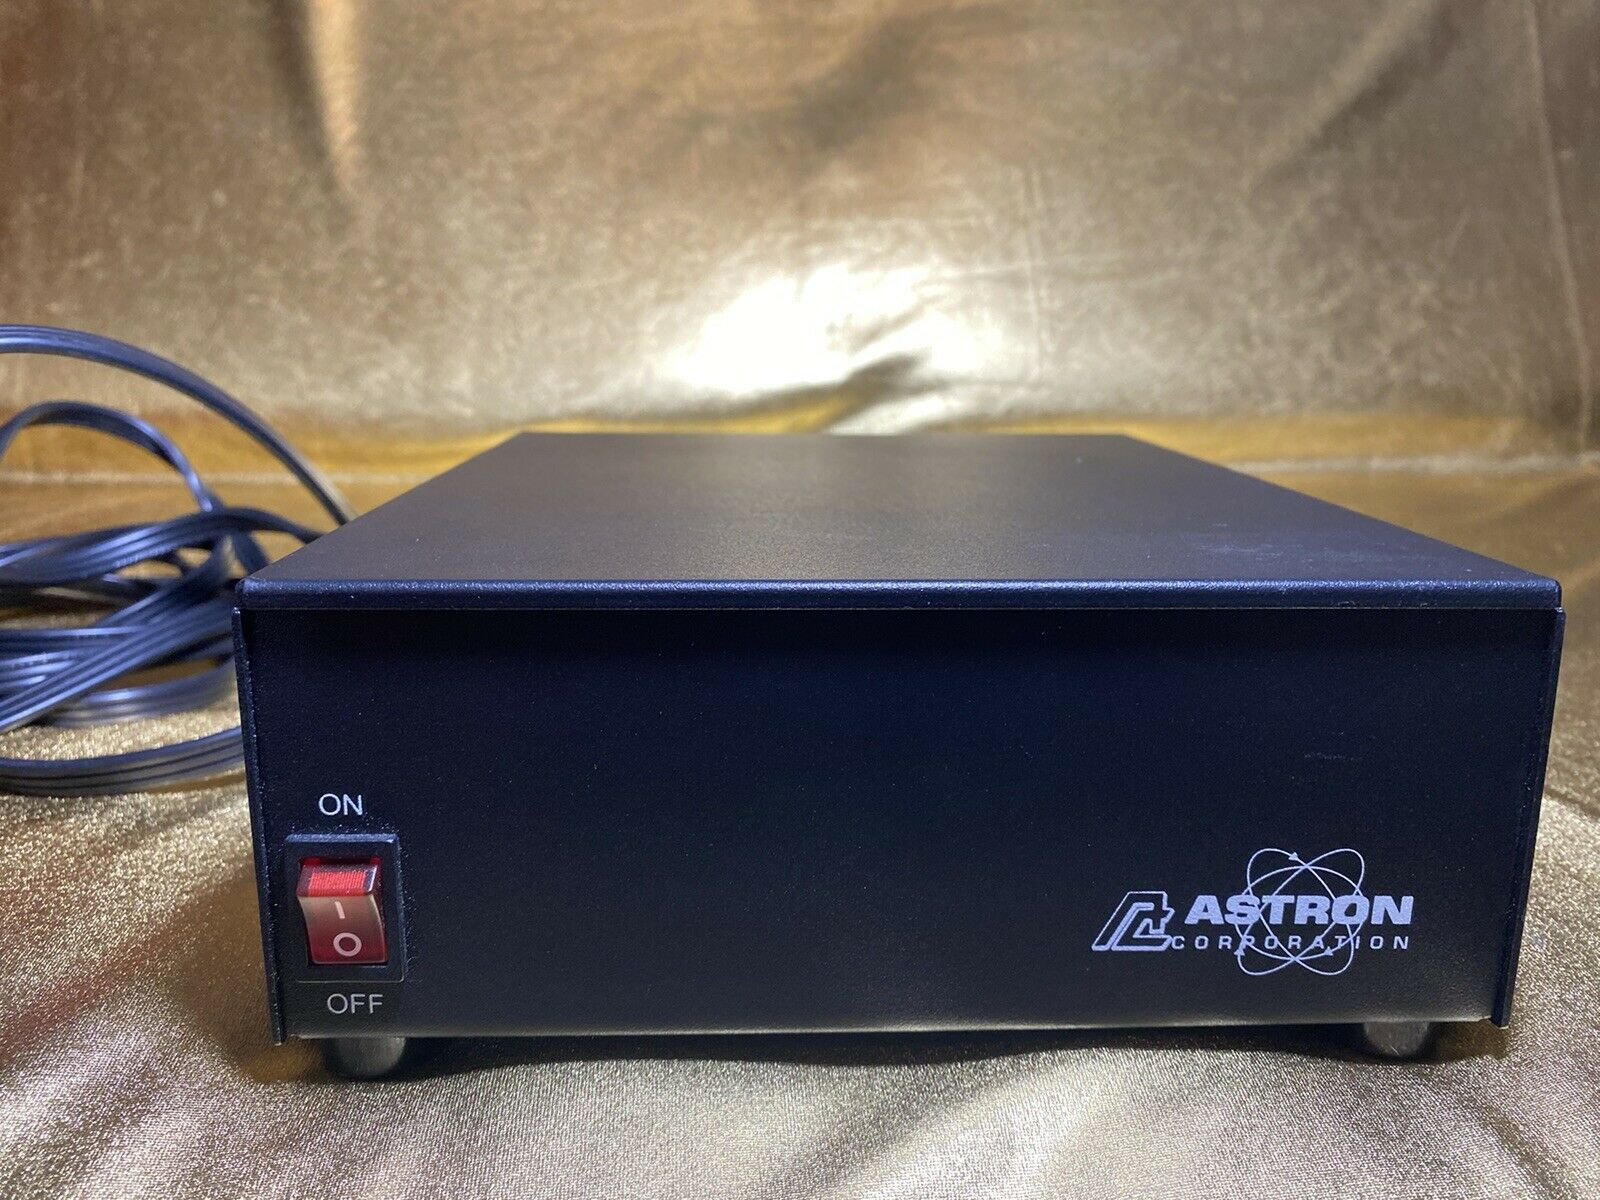 SS-25 thrift_kingdom Astron SS-25 Desktop Switching Power Supply, 13.8V, 25A Max